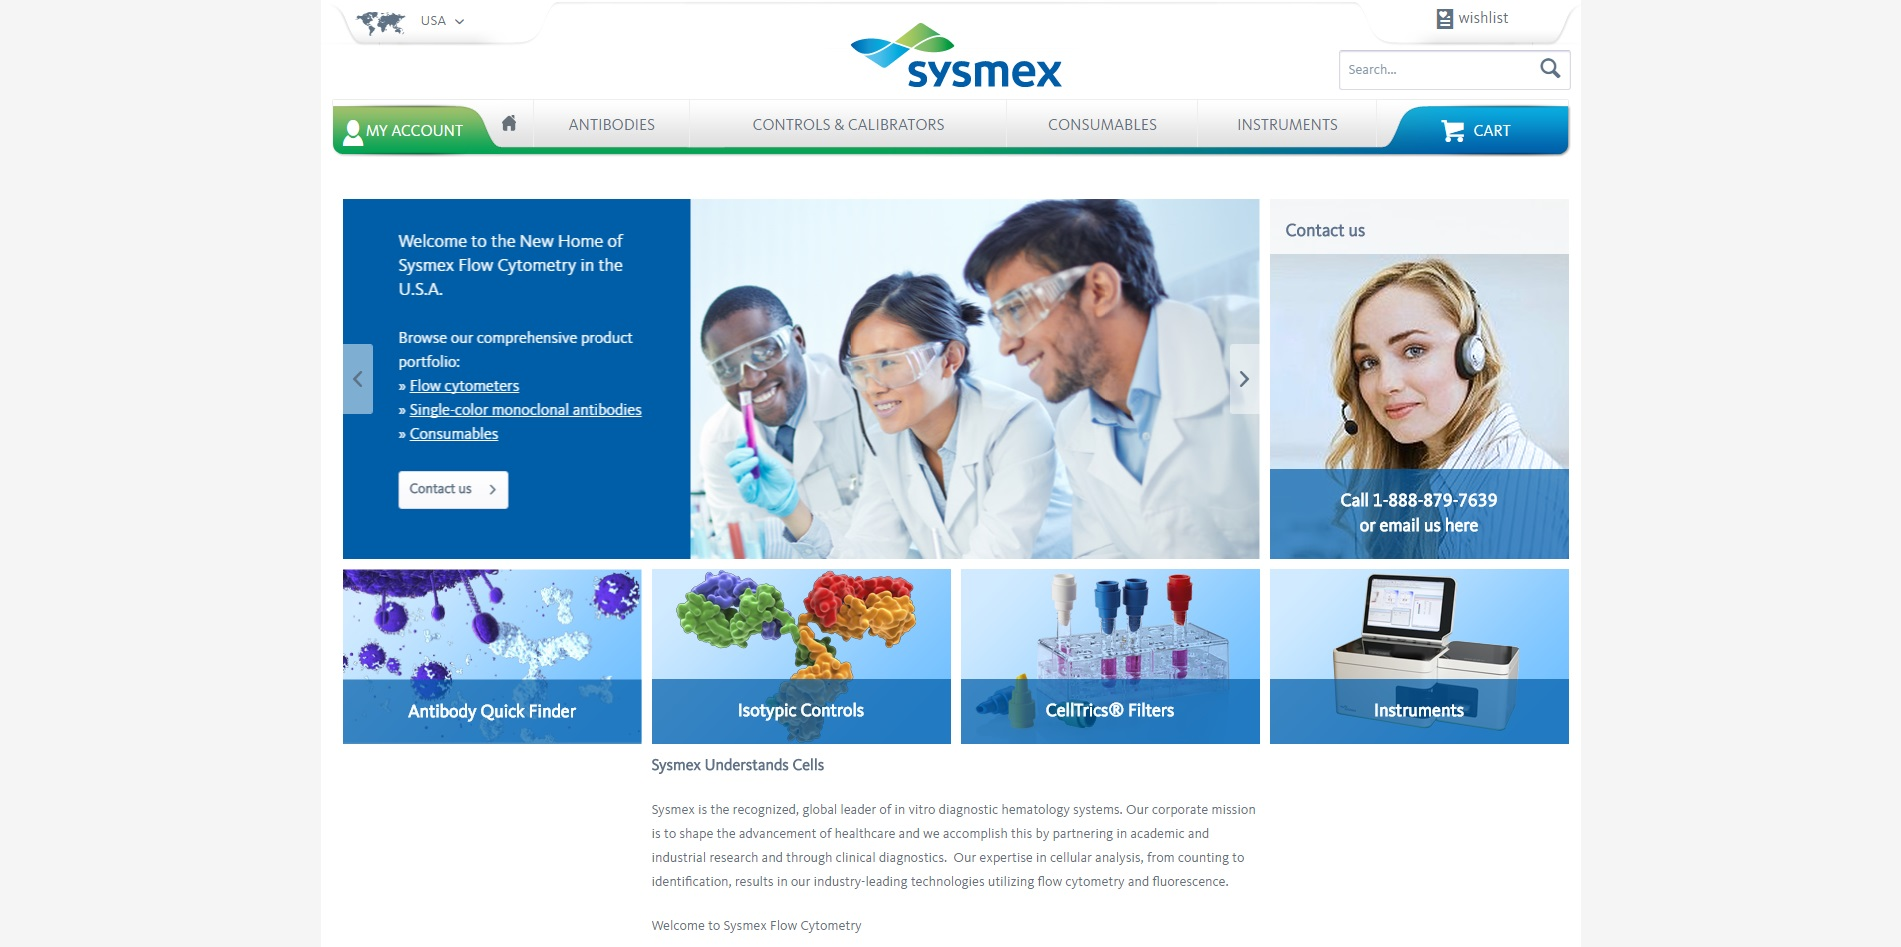 sysmex-hitado-shop-usa